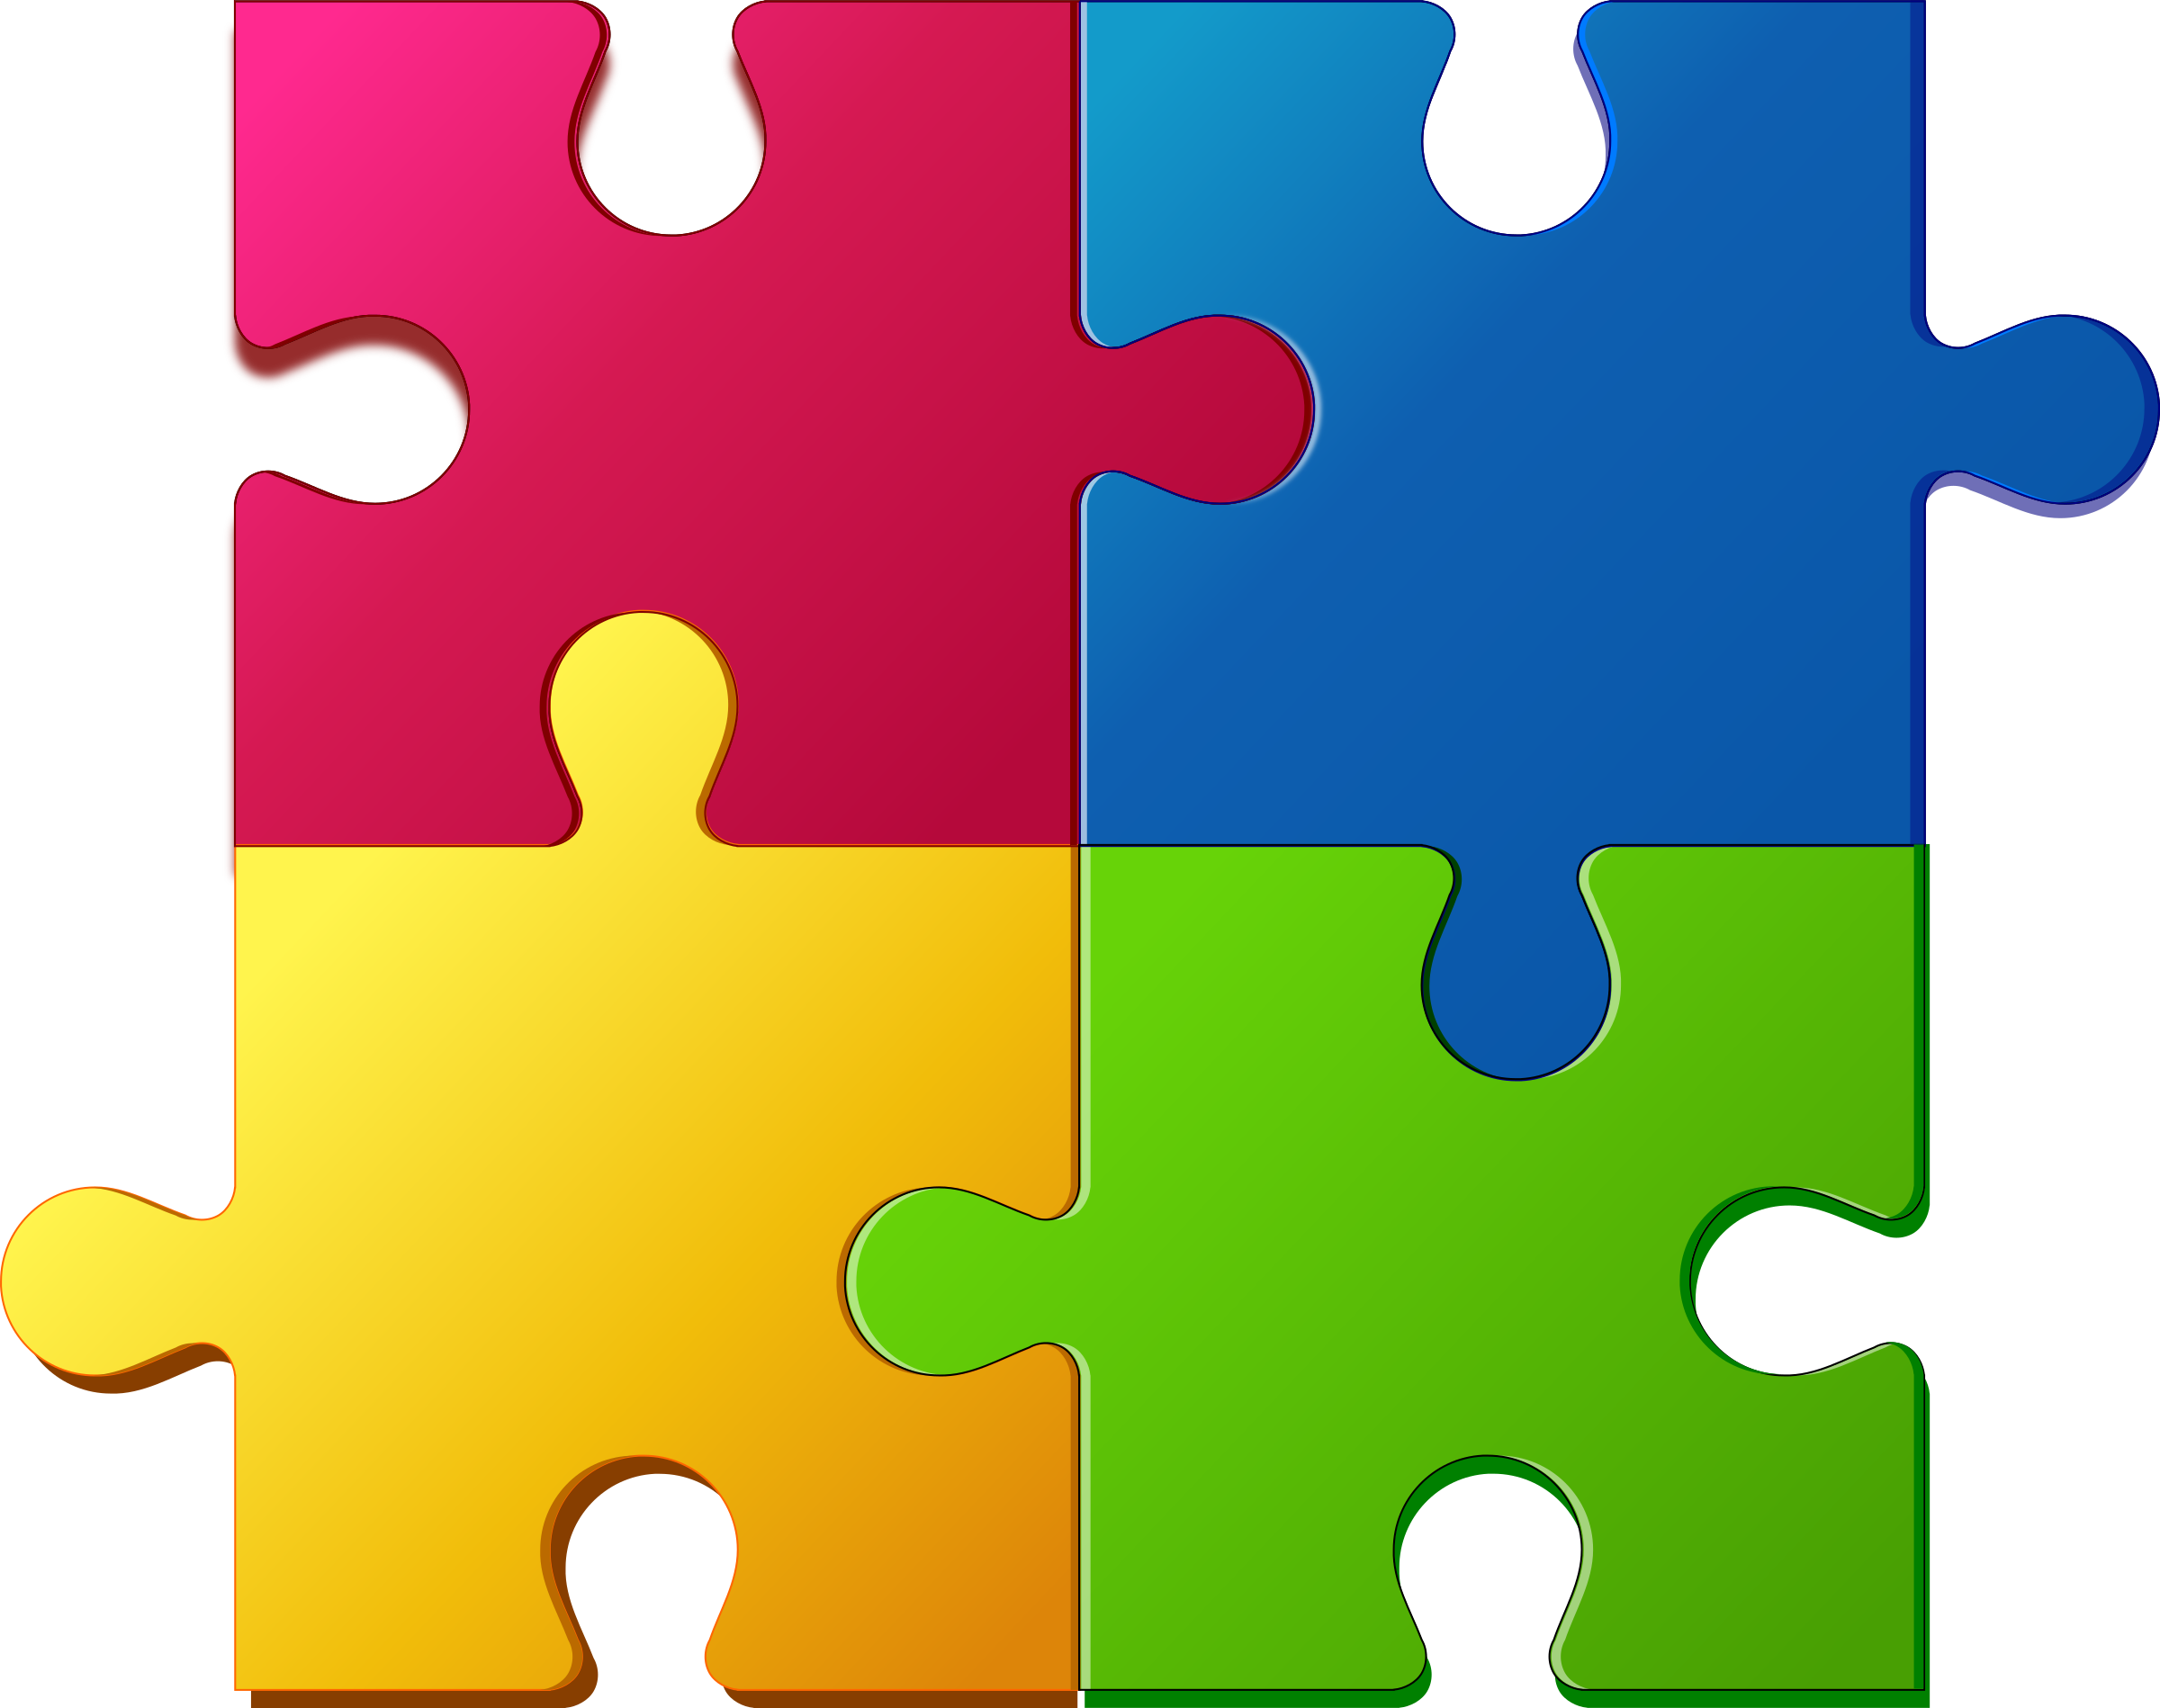 clipart jigsaw puzzle rh openclipart org jigsaw puzzle border clipart jigsaw puzzle clipart free